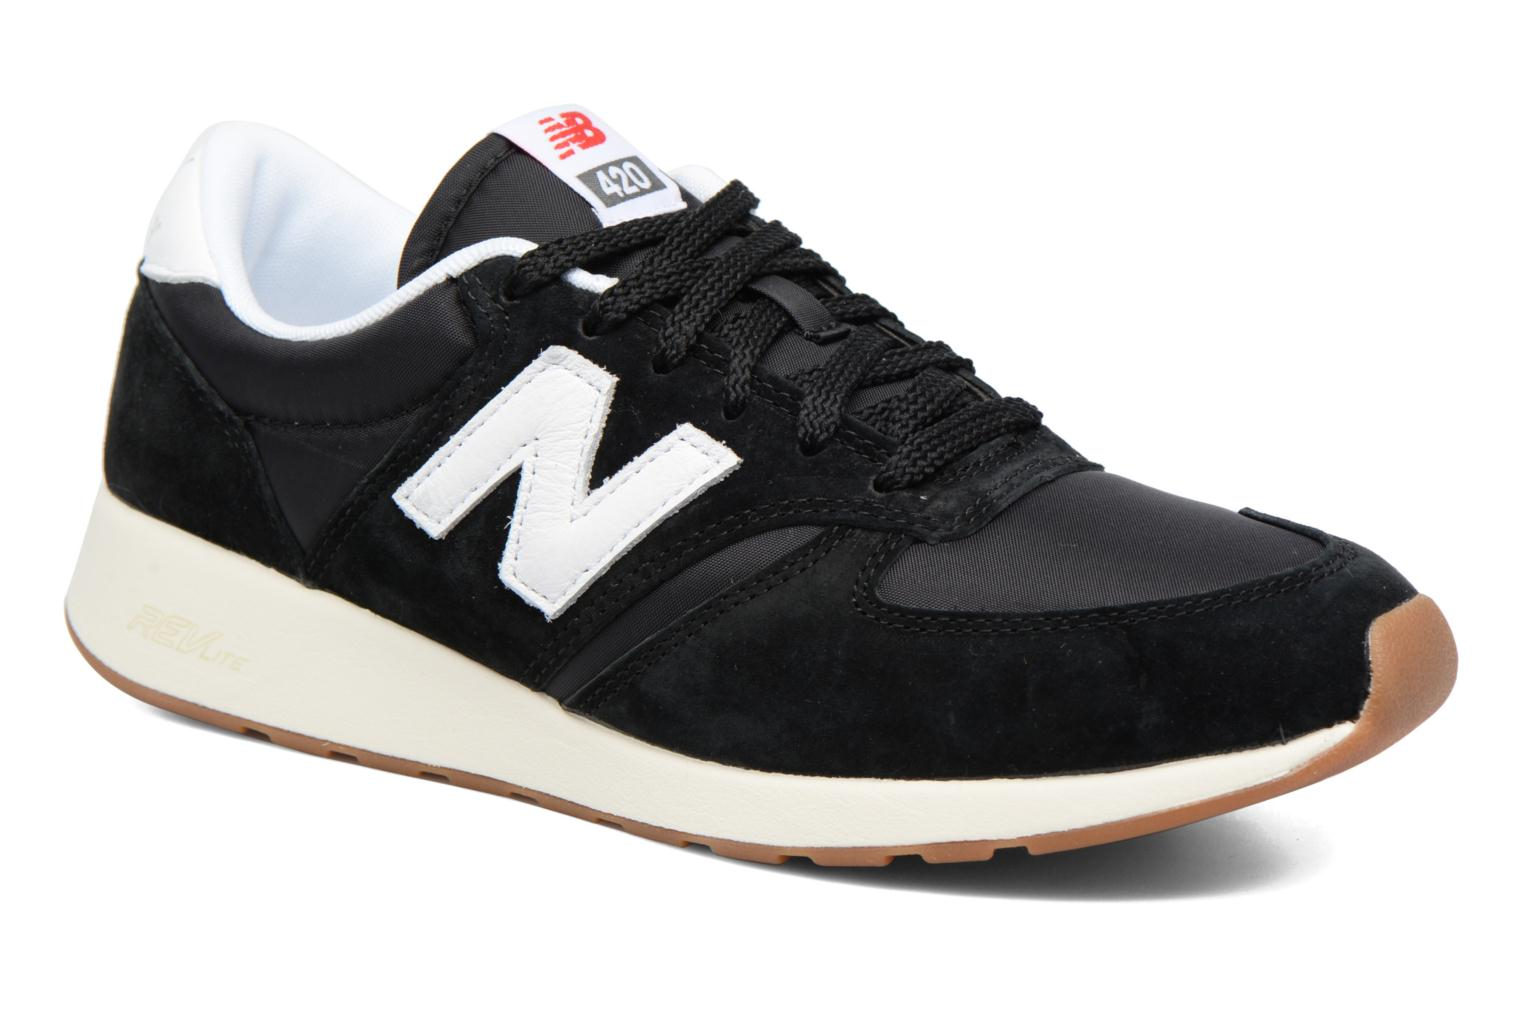 Marques Chaussure homme New Balance homme MRL420 Grey2